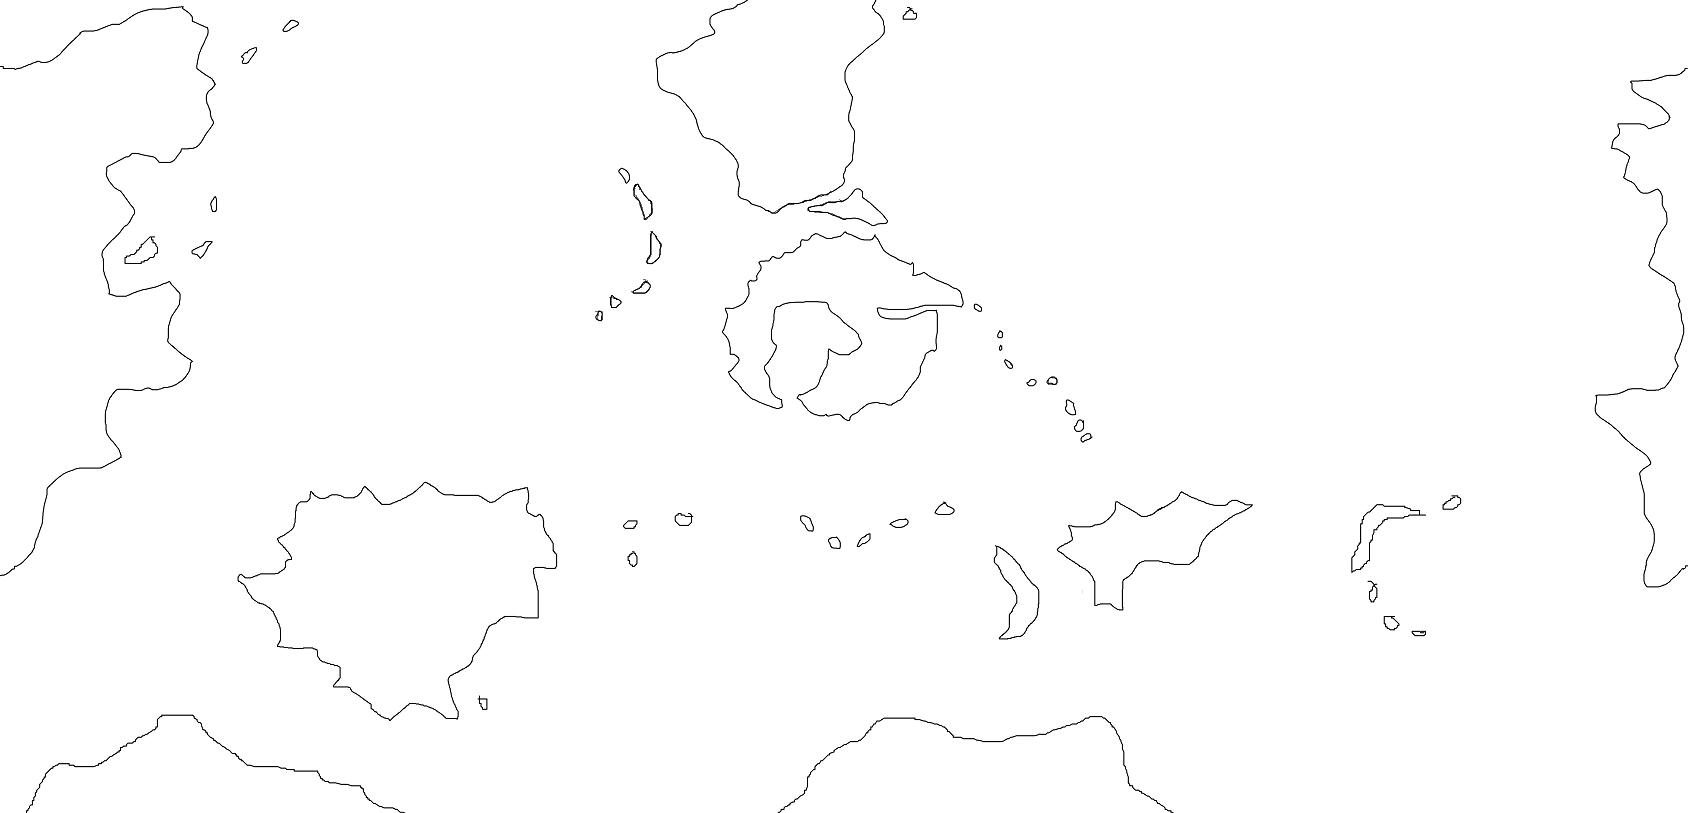 Tinkering With Globe Maps